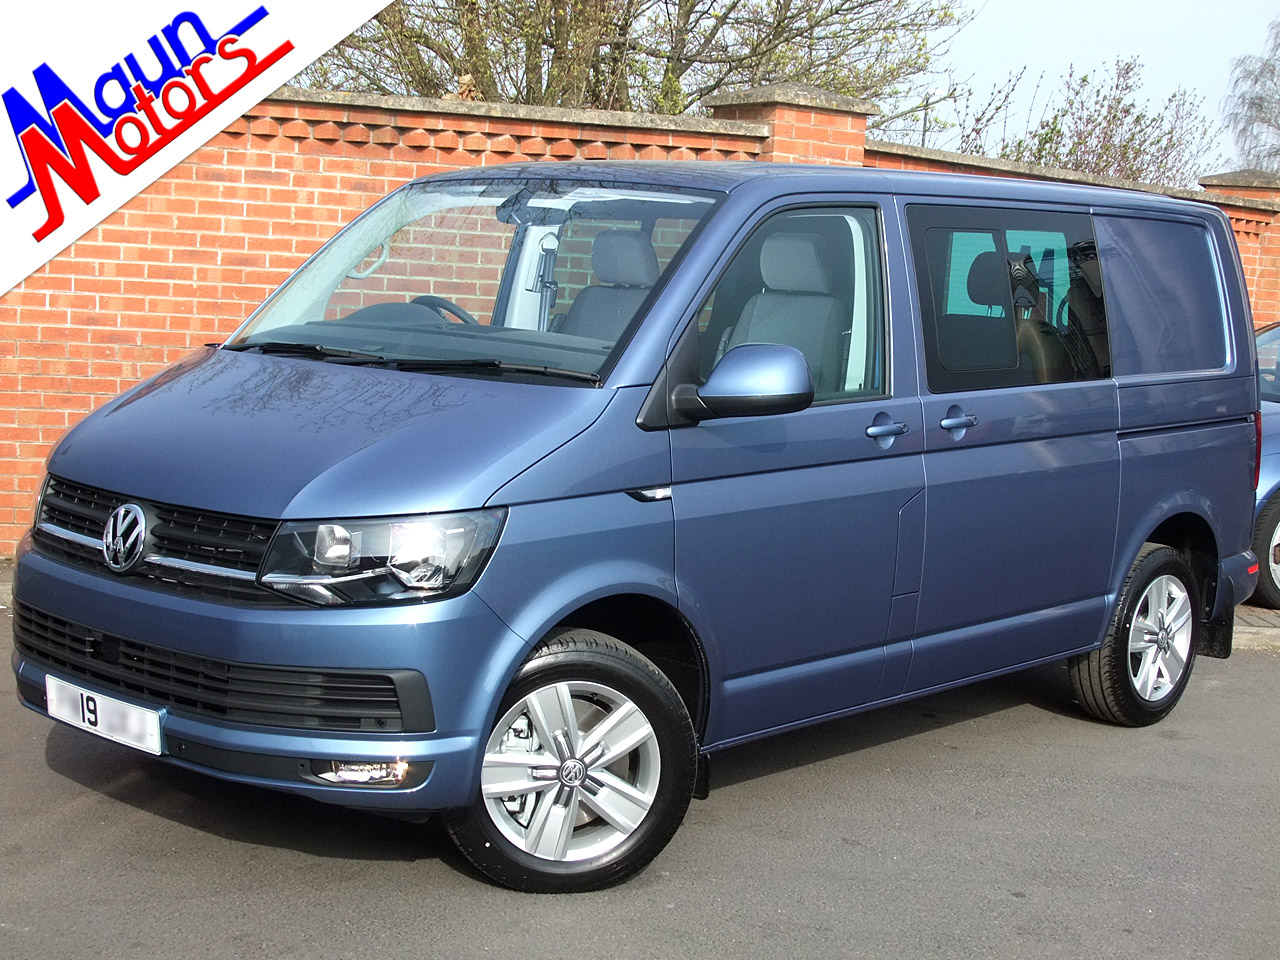 VW Transporter Kombi used crew vans for sale